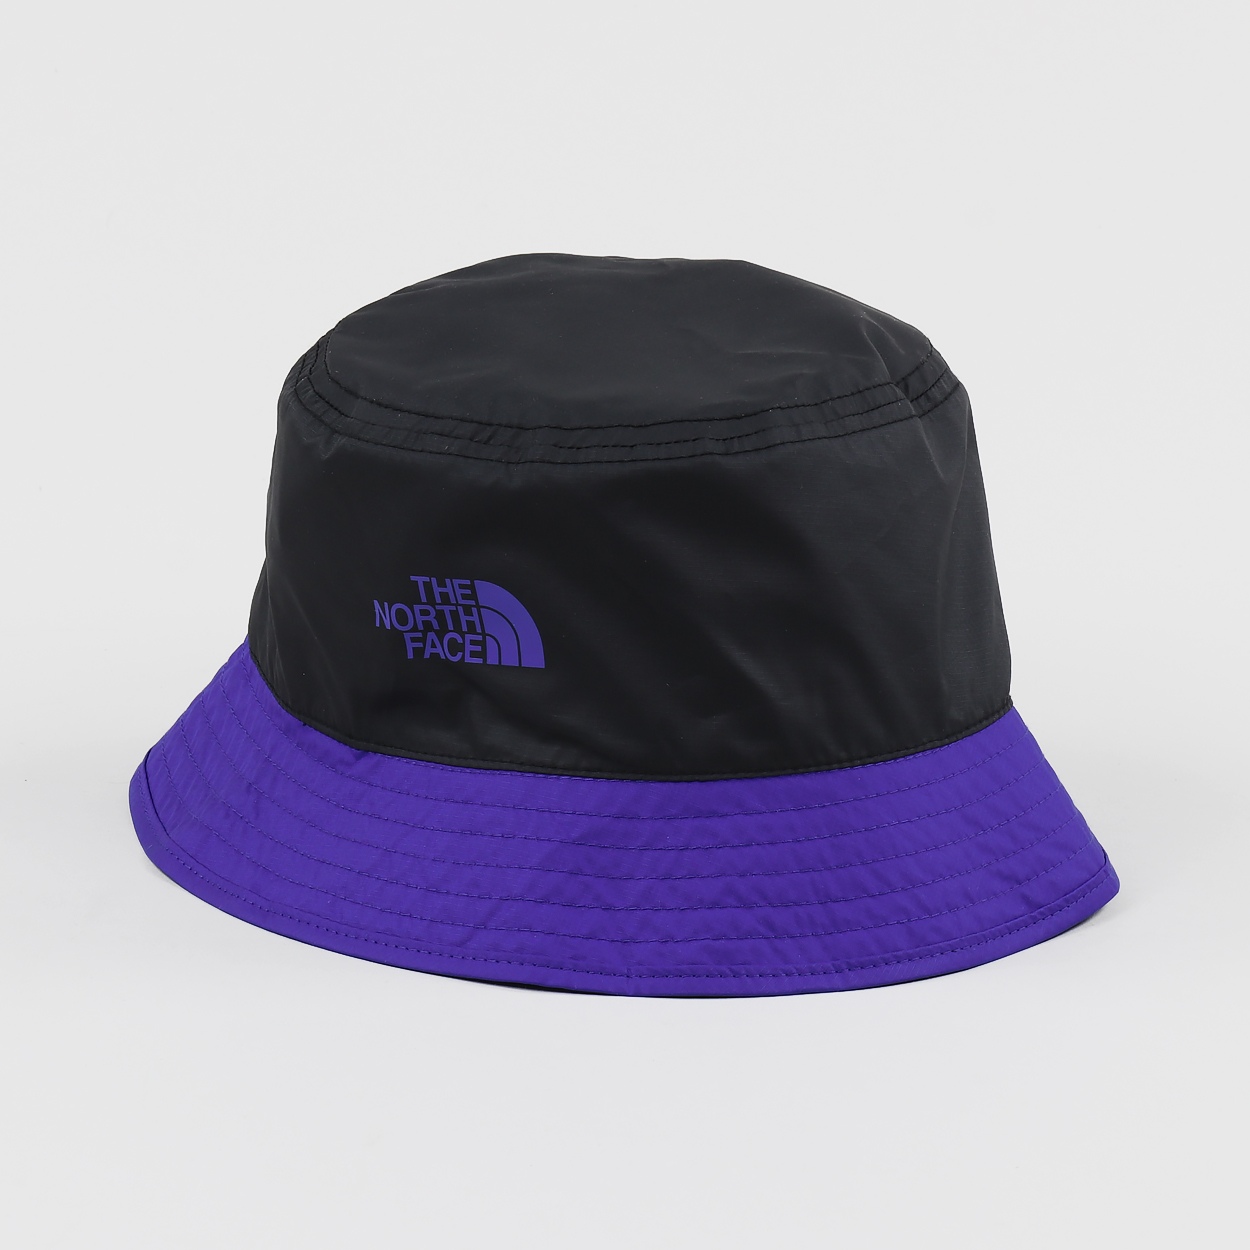 dfa1fa483a7cd9 A bucket hat from The North Face made from 100% polyester with a reversible  design from the '92 Rage' collection, a celebration of snowboarding culture.